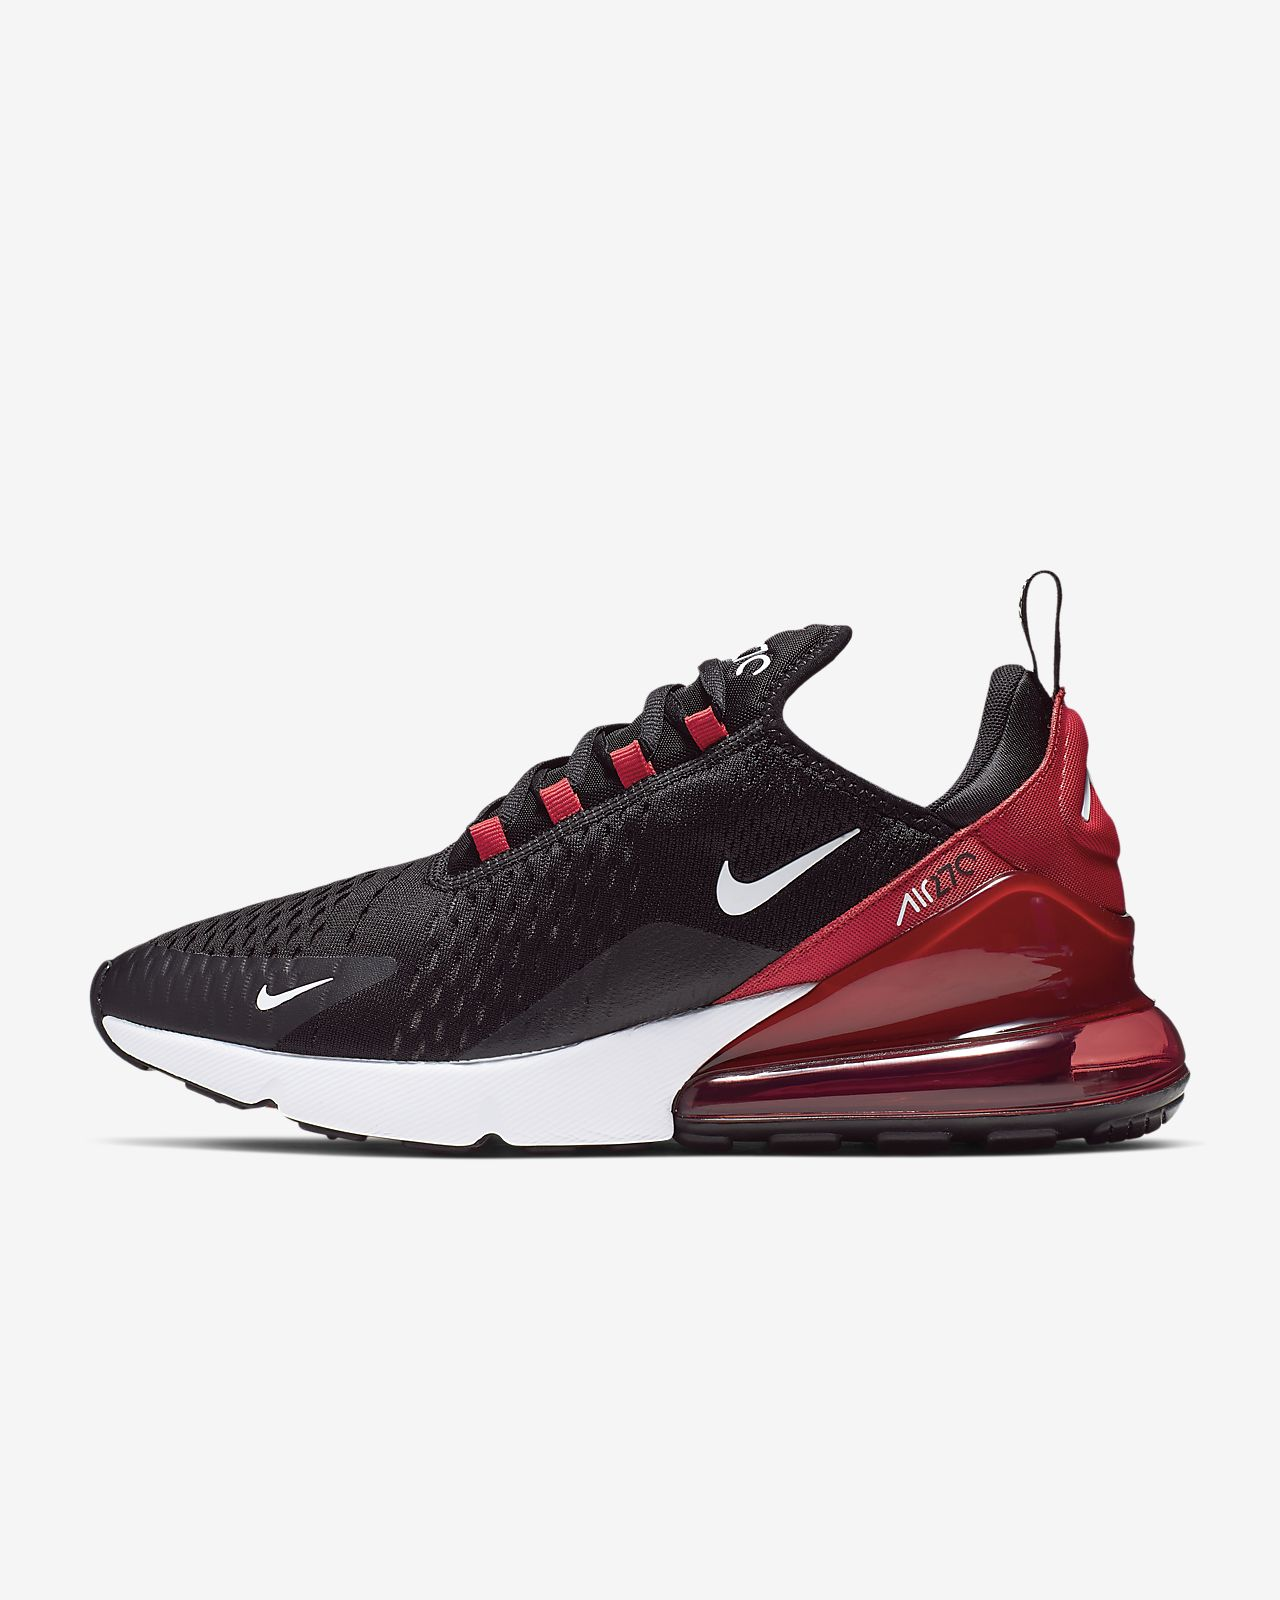 huge selection of f22dc 00da3 ... Sko Nike Air Max 270 för män